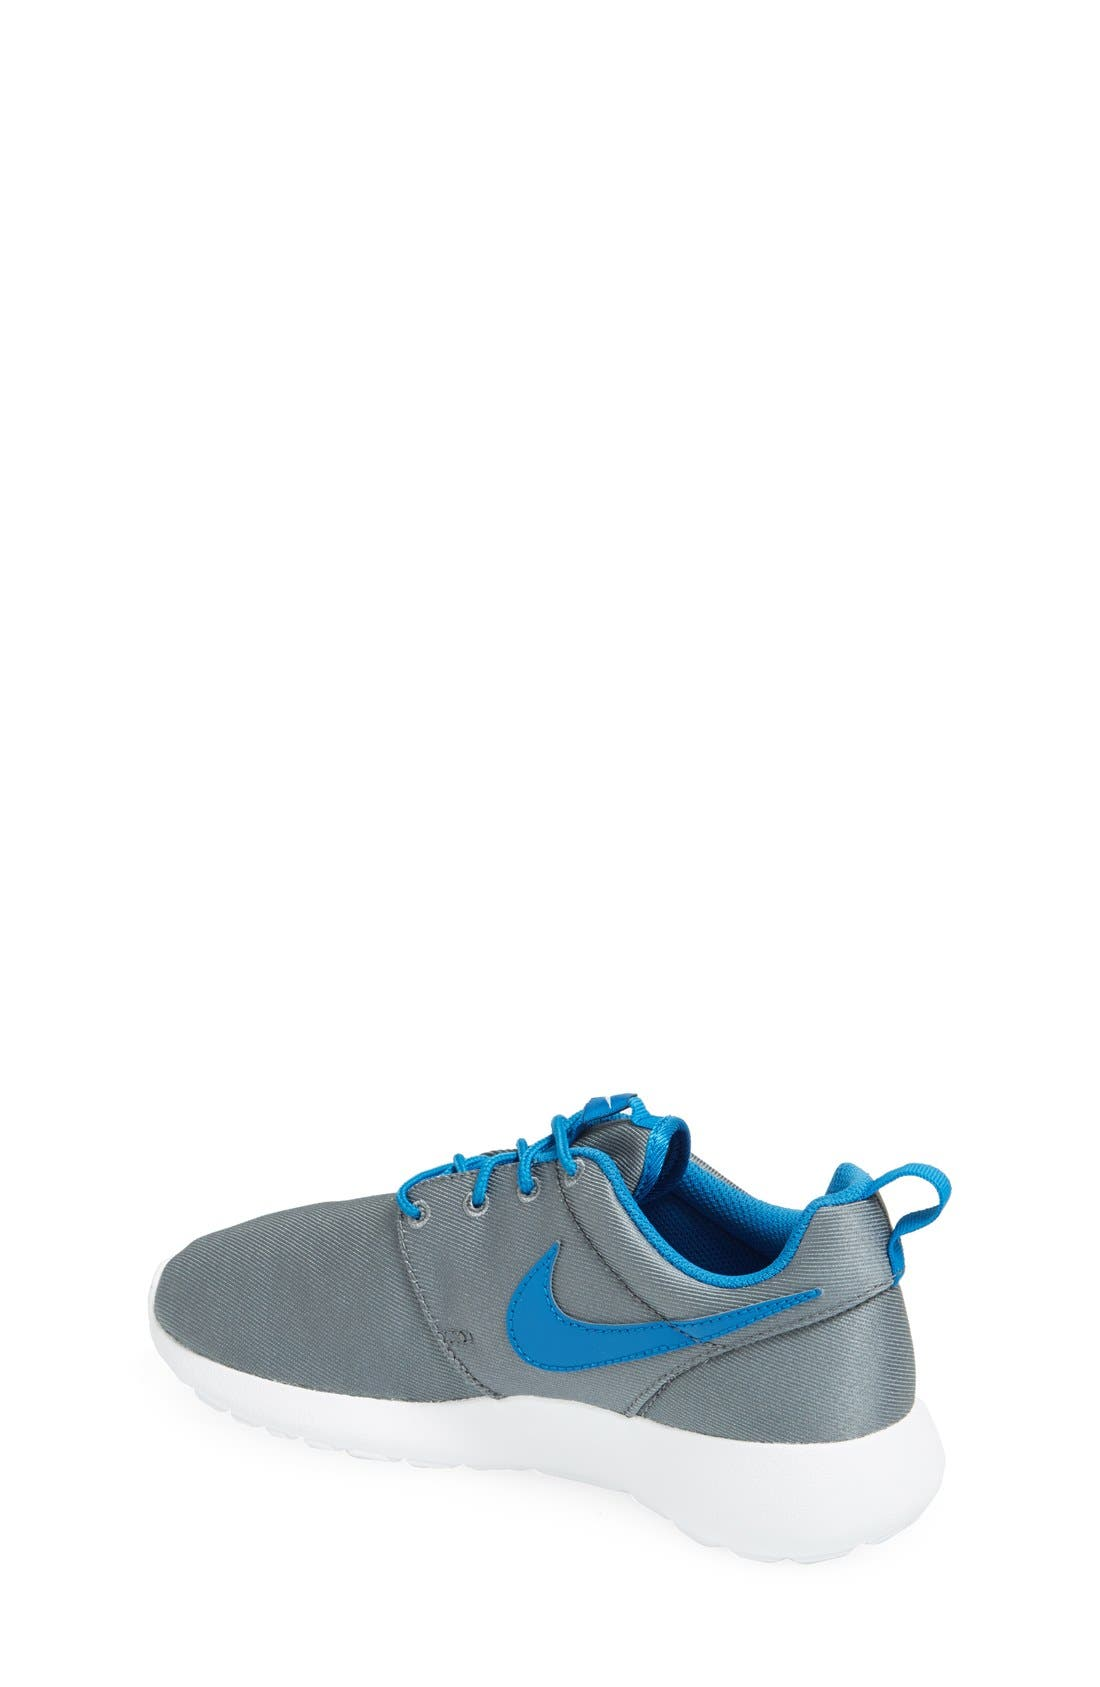 'Roshe Run' Sneaker,                             Alternate thumbnail 75, color,